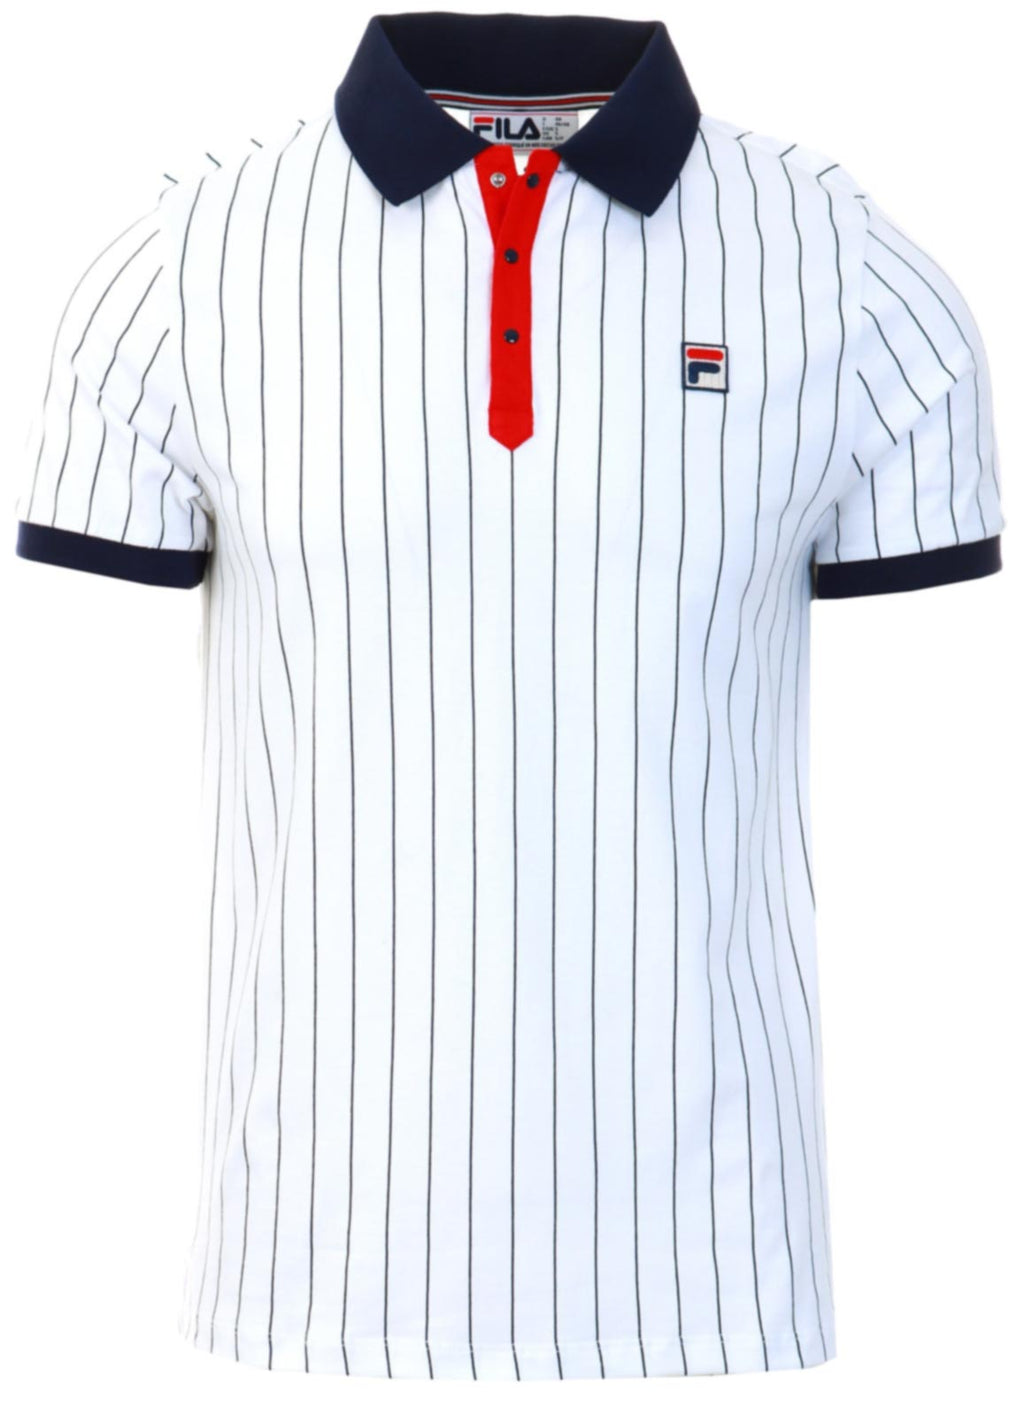 Fila Classic Vintage Striped Polo Shirt White